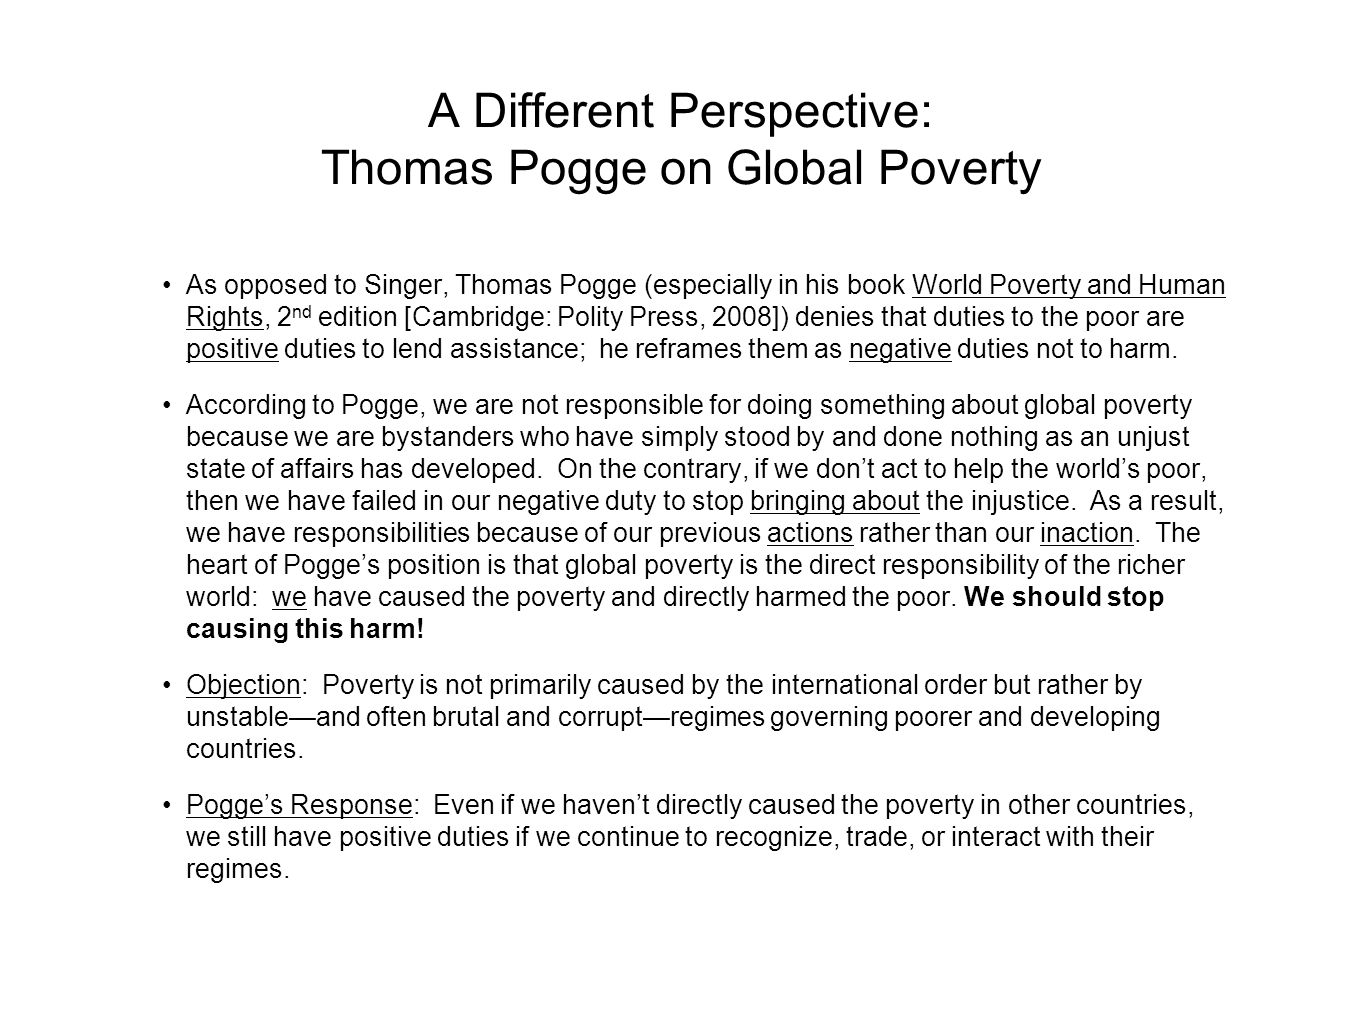 A Different Perspective: Thomas Pogge on Global Poverty